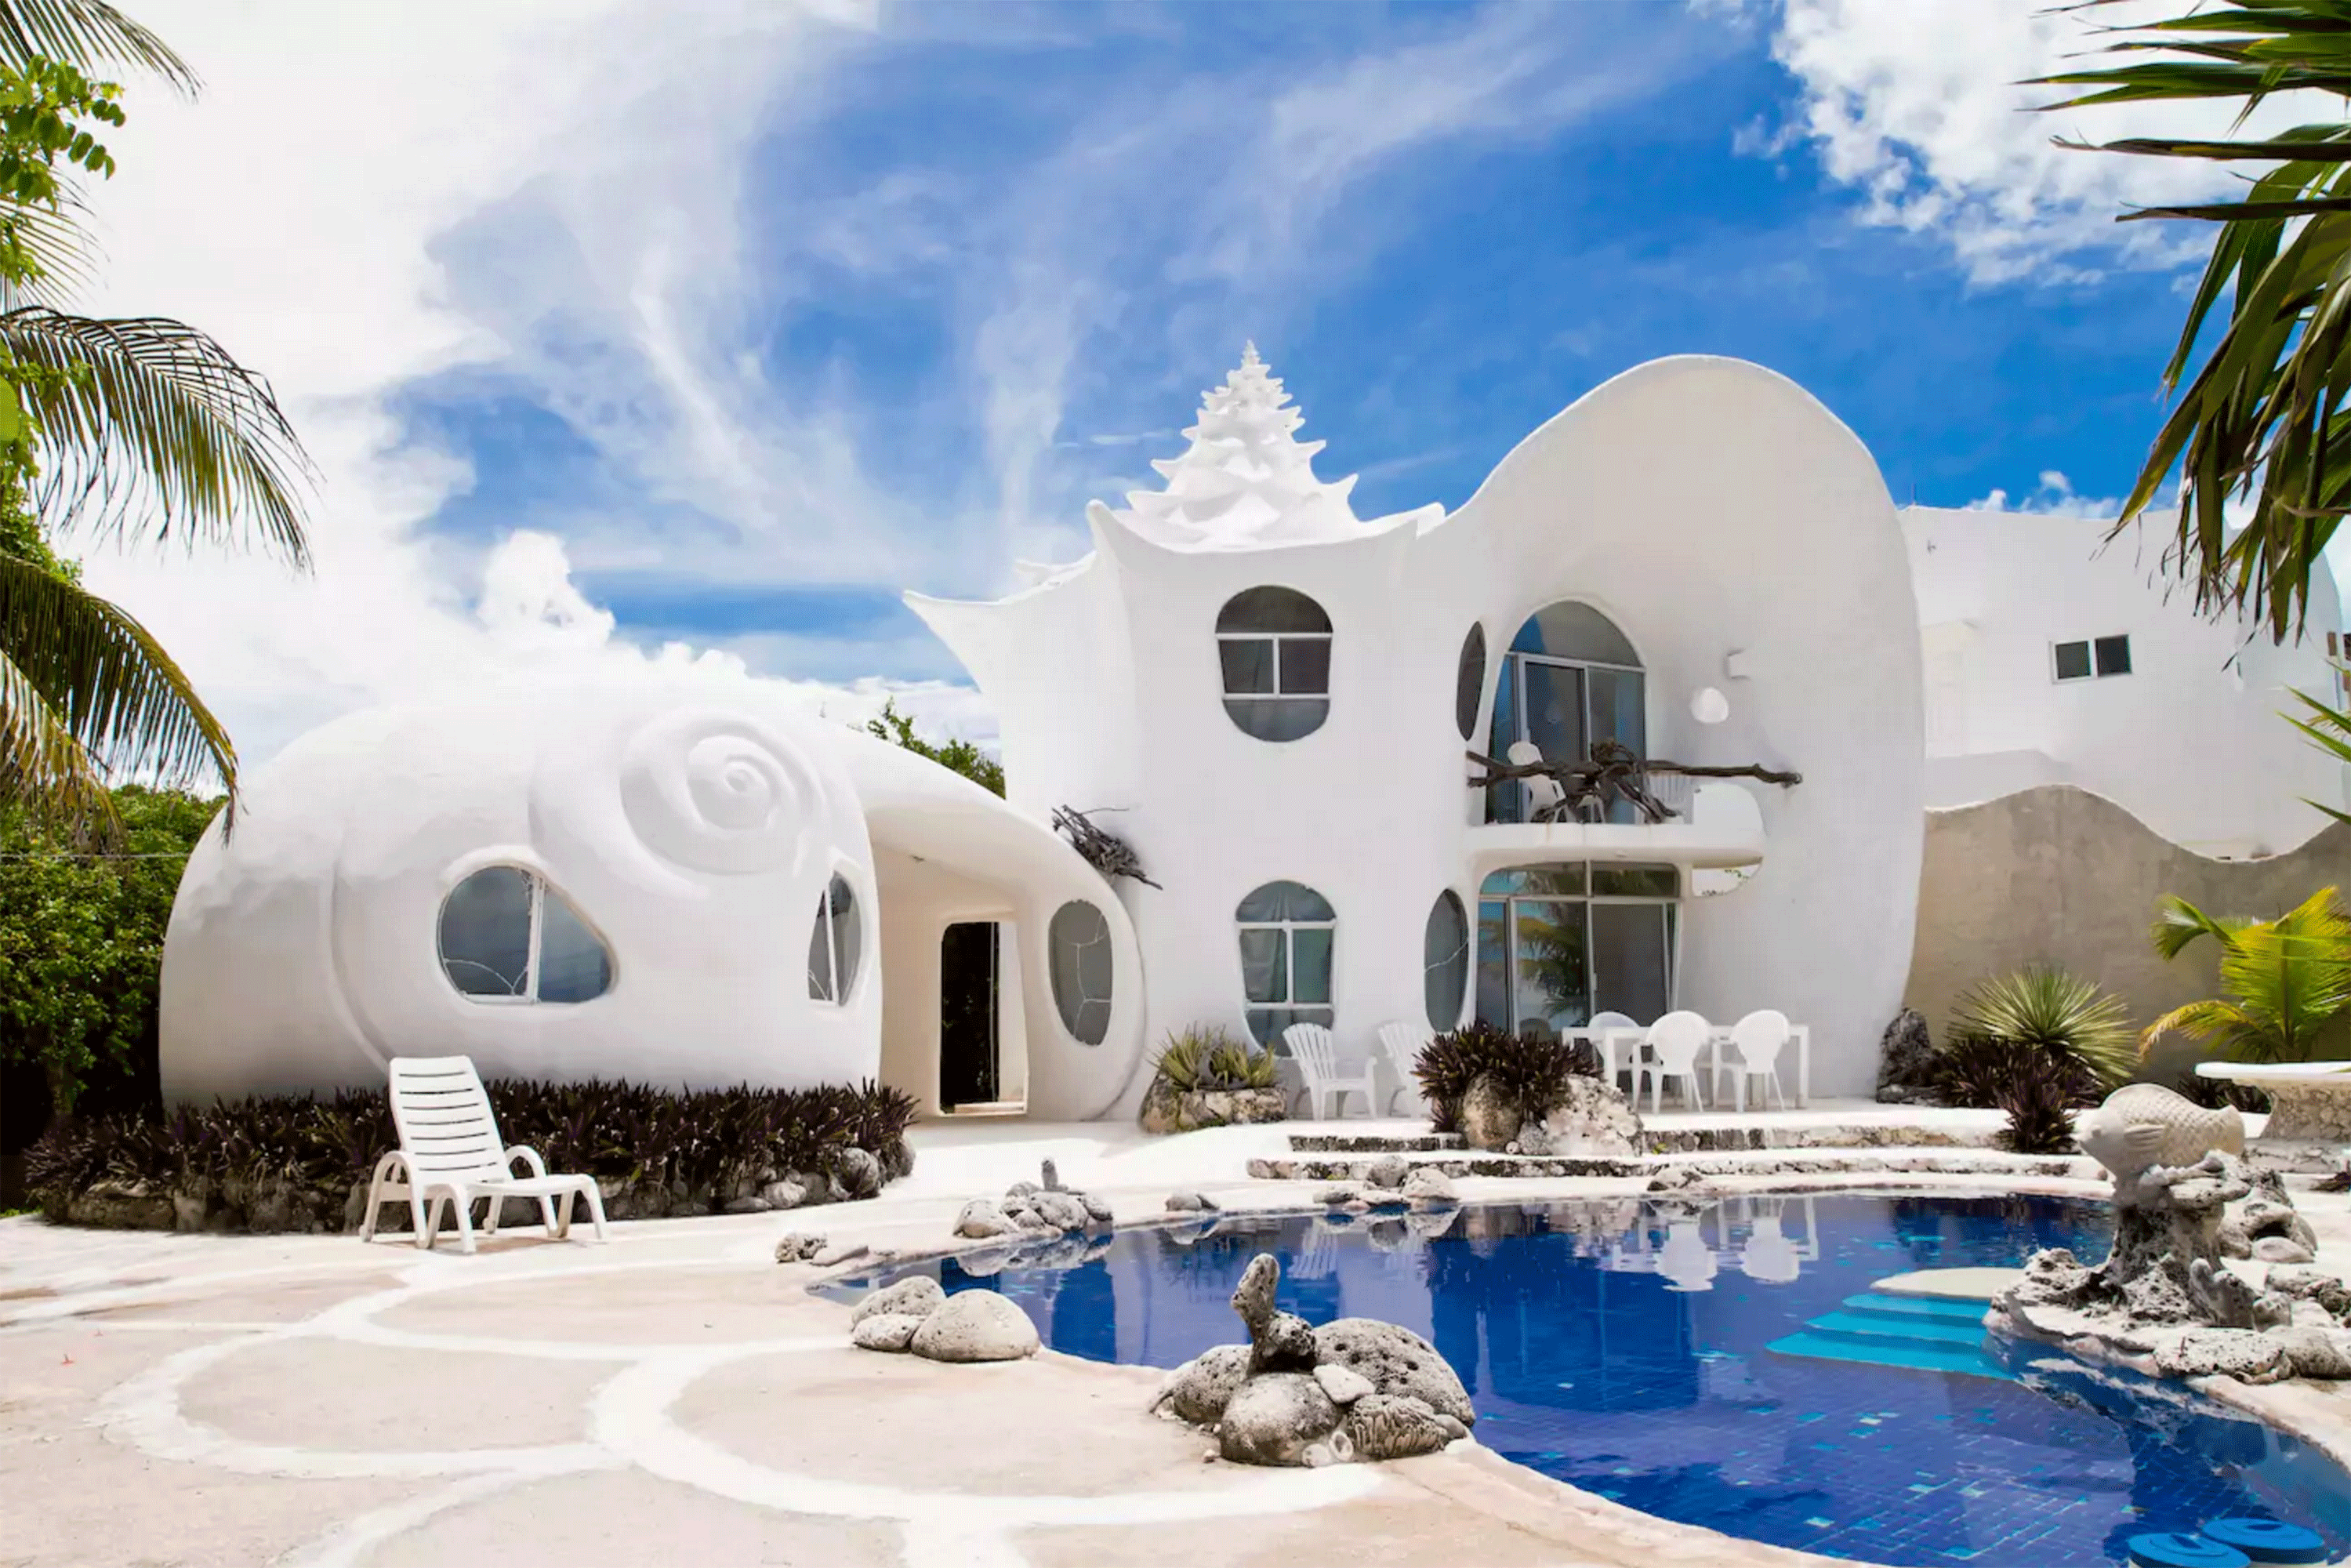 Tropical Airbnb Stays That Will Blow Your Mind recommendations